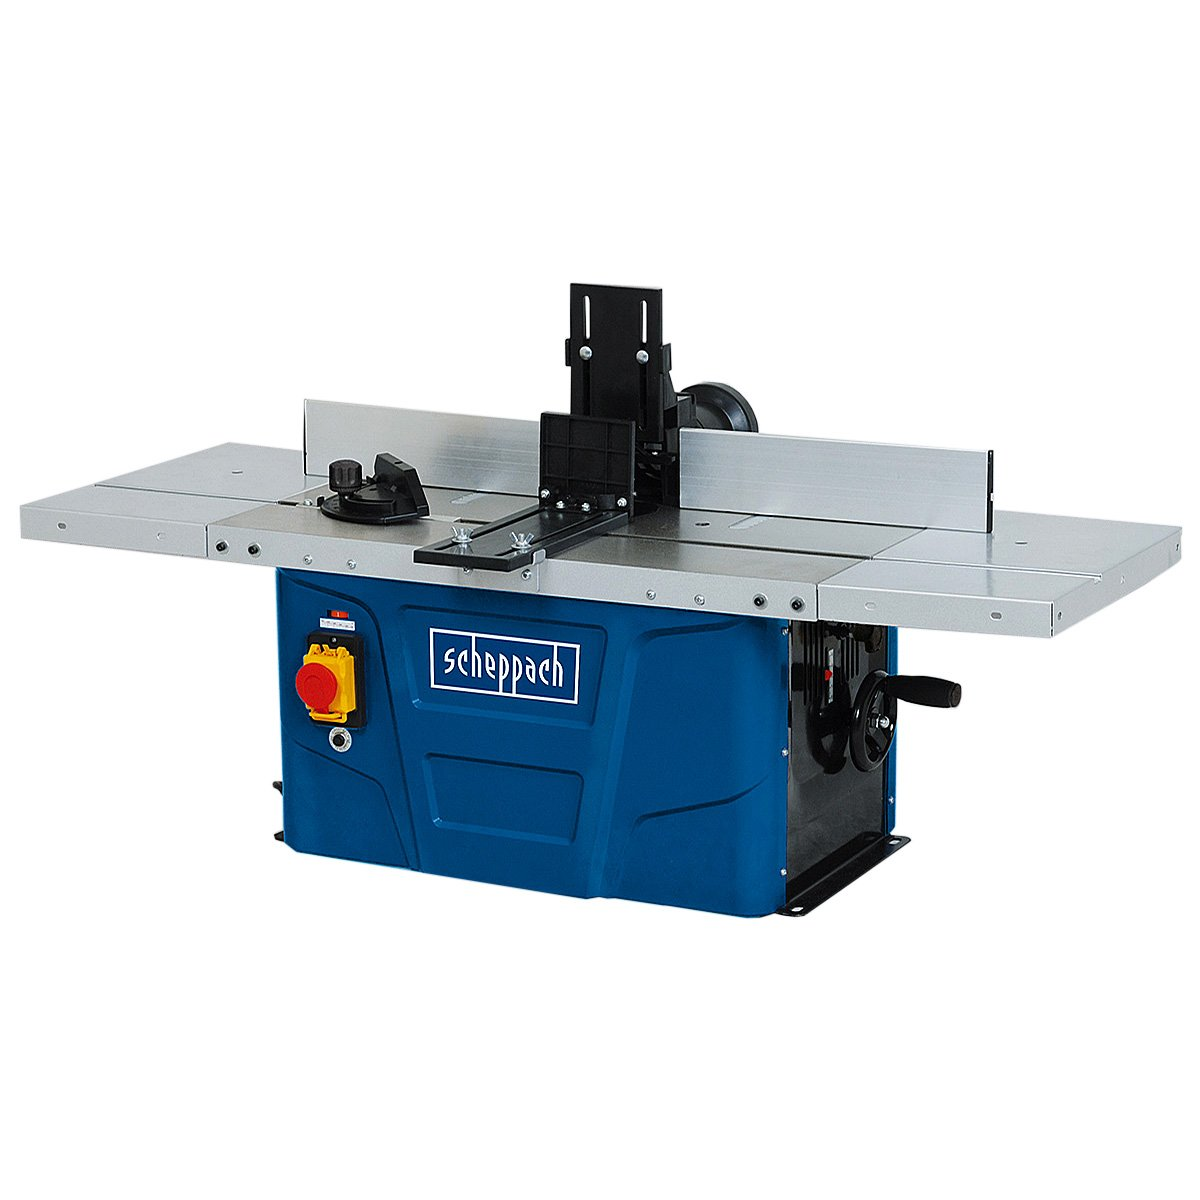 Triton rta300 precision router table review best router 2017 router table insert nz best 2017 greentooth Images